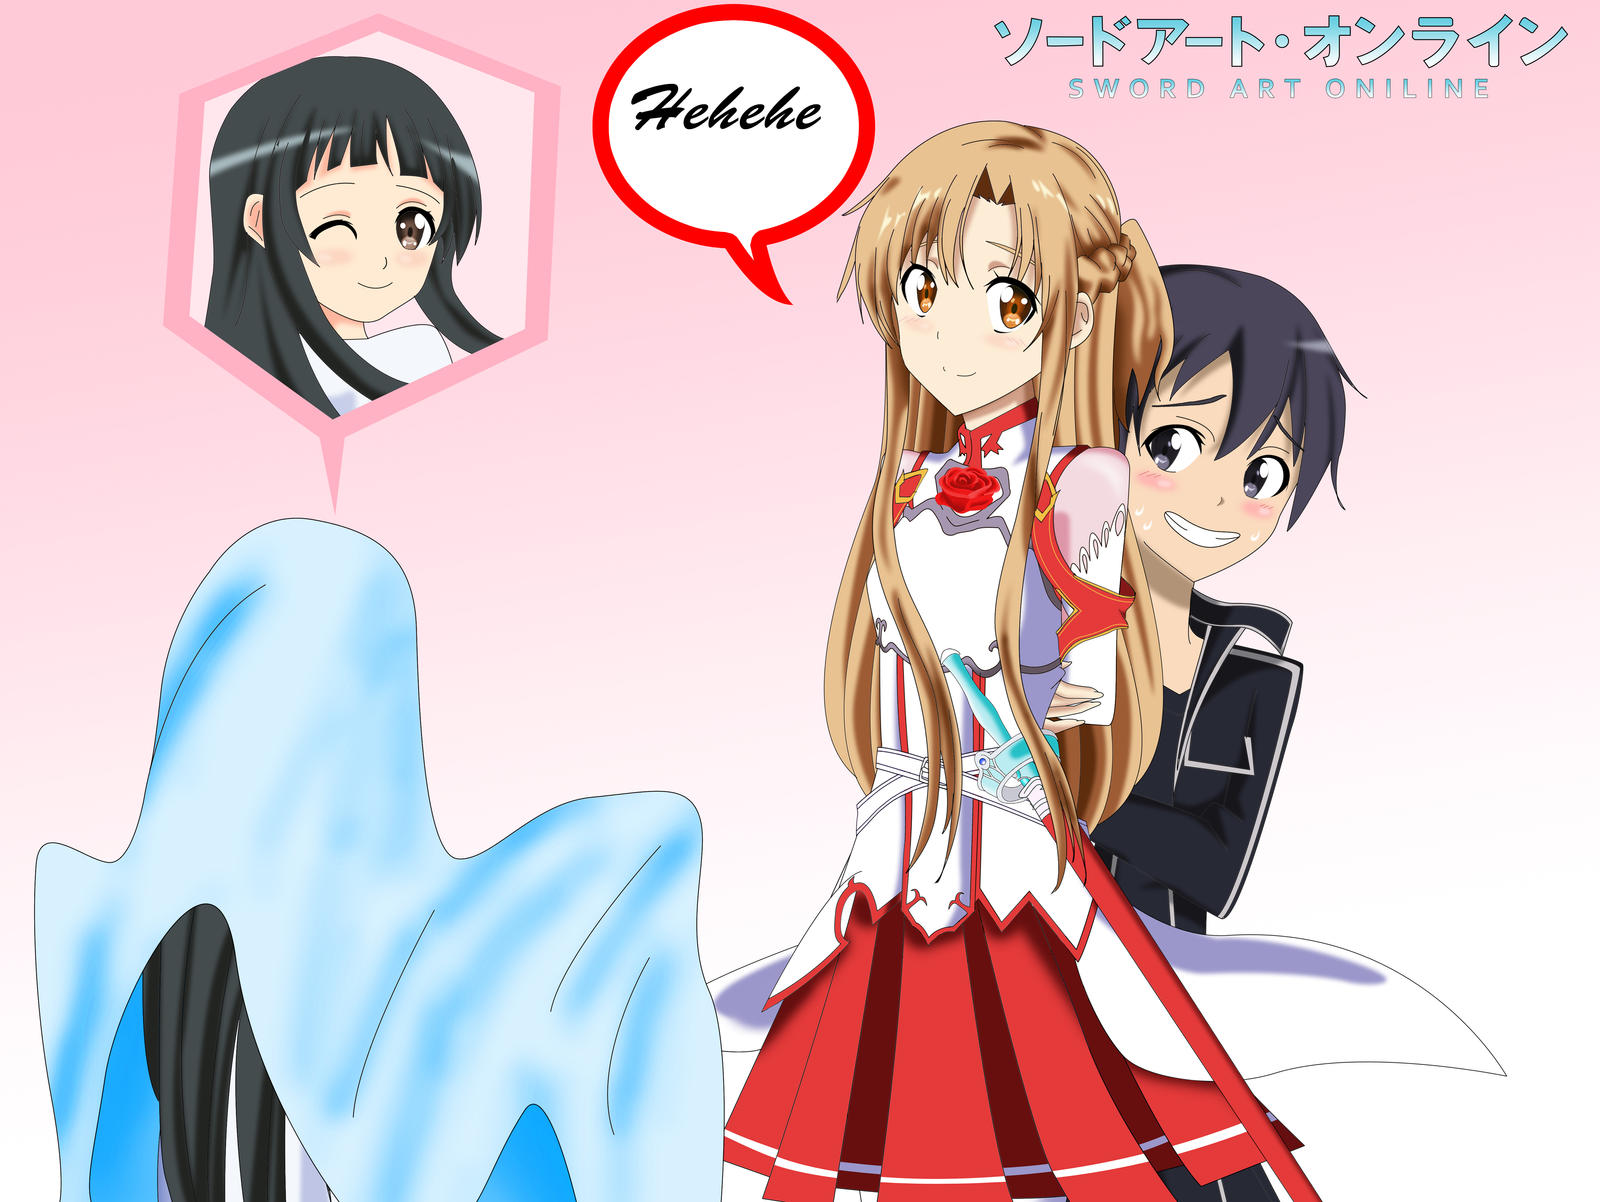 Dress up games favourites by asuna and kirito on deviantart - Sao Ghost Yui Scares Kirito By Sincity2100